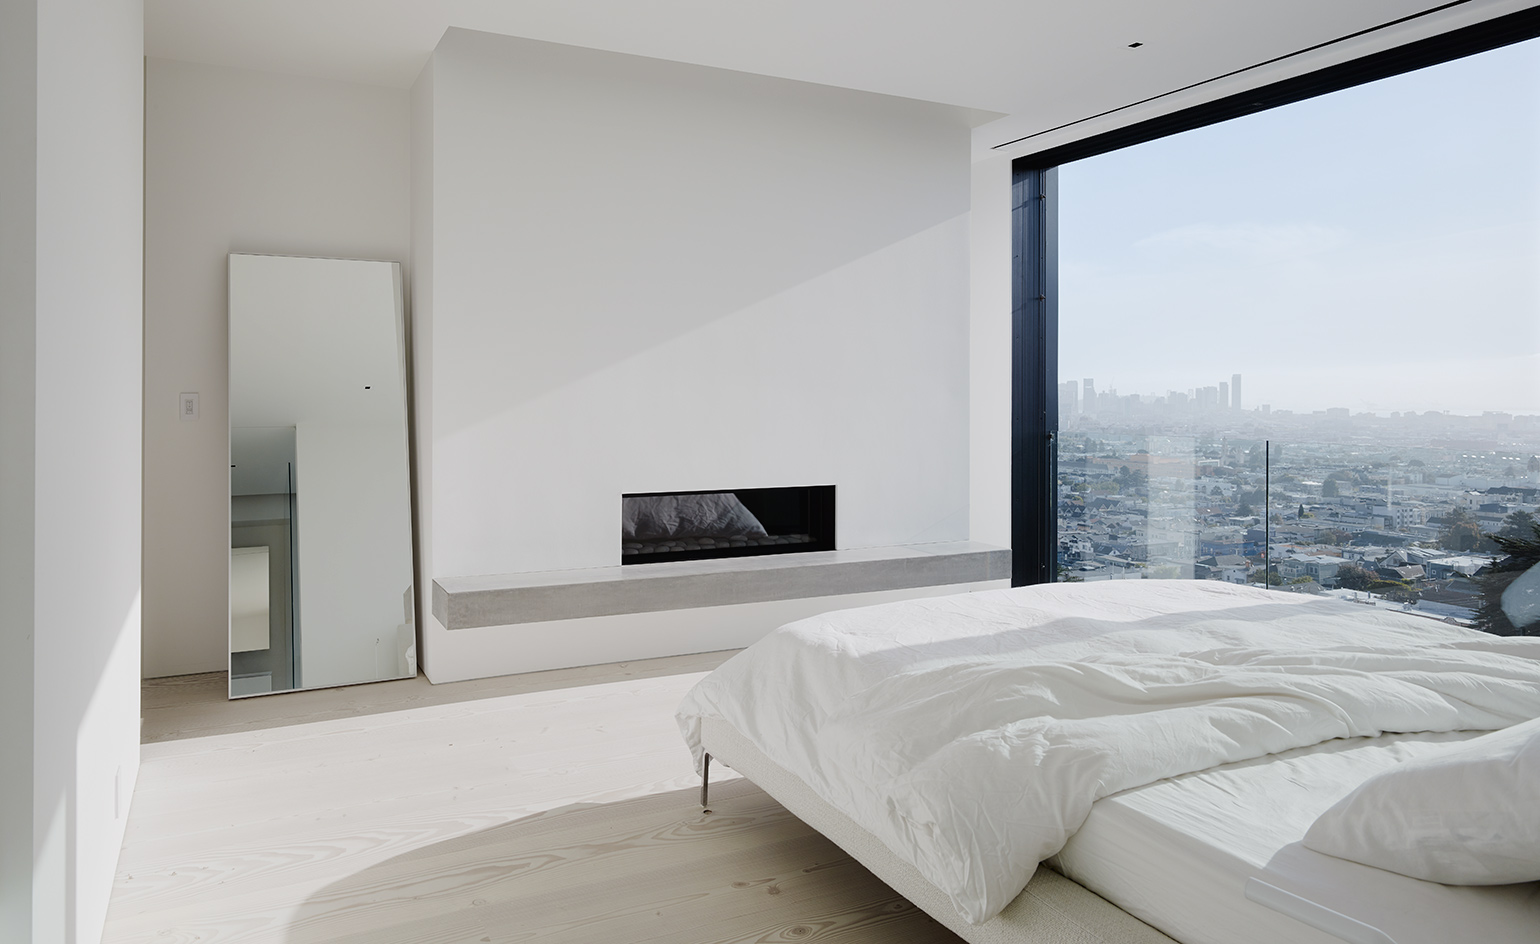 The master bedroom features a glazed wall with jaw dropping views, a built in fireplace and a large bed